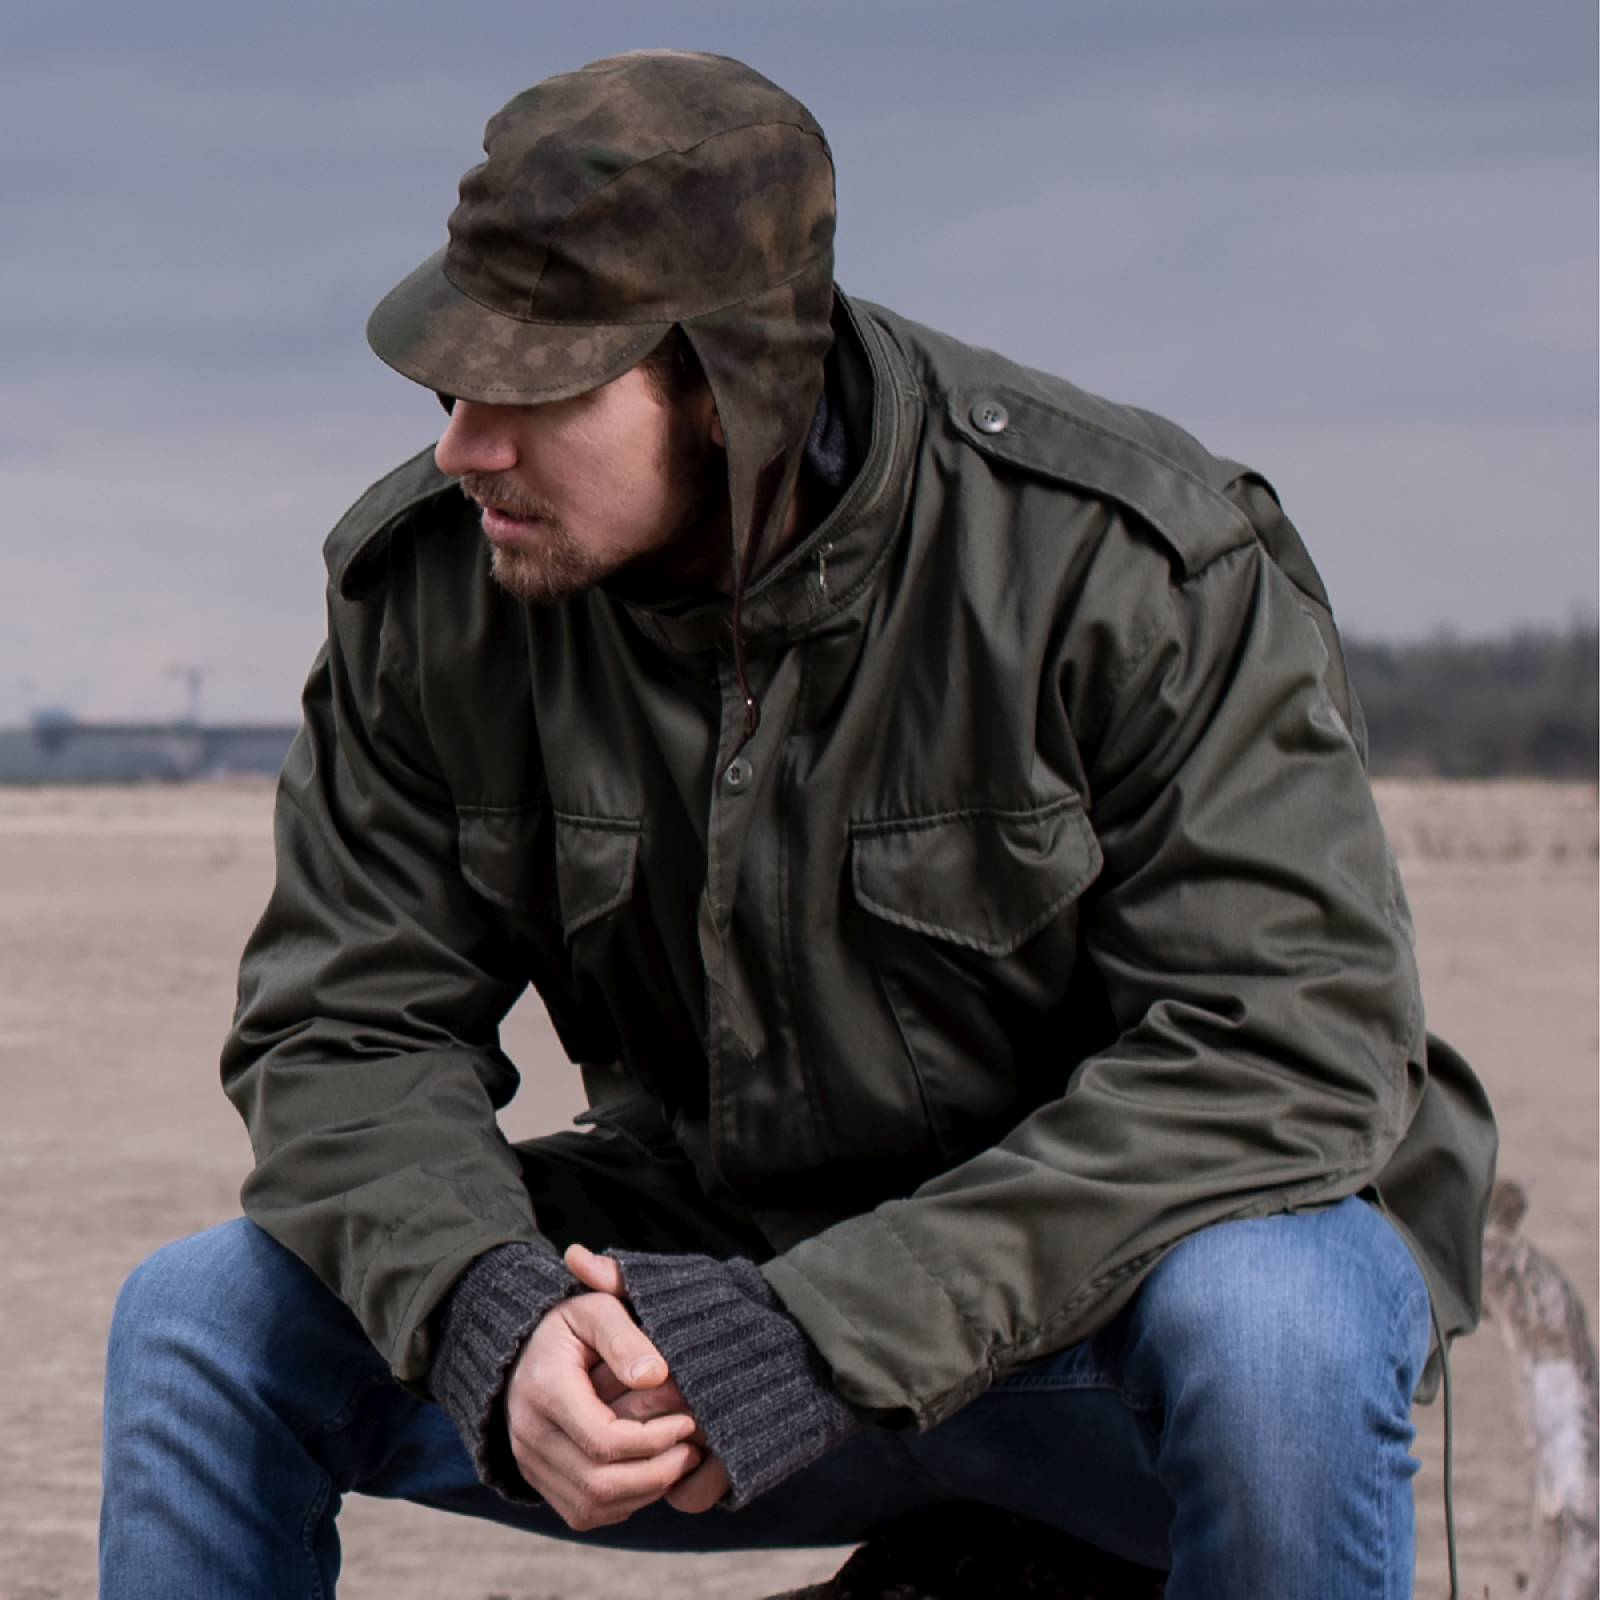 Waxed Cotton Roam Trapper Hat Kamikaze Ear Tab Storm Cap Camo Bomber Ushanka Mens Aviator Russian Pilot Hunter Sherpa